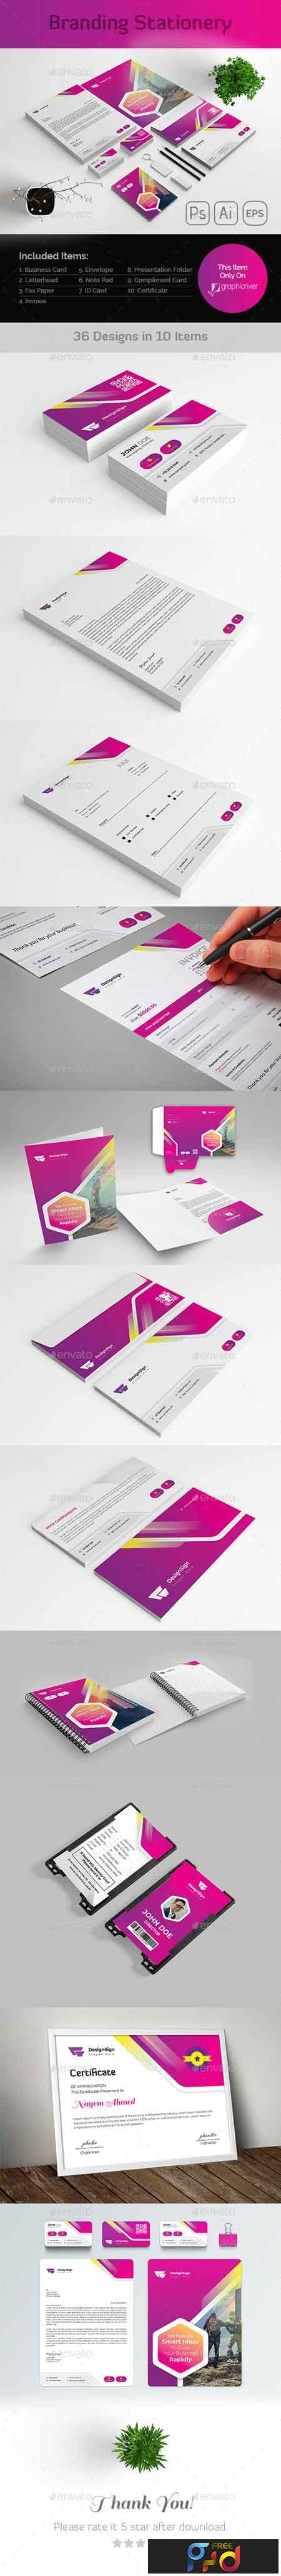 Branding Stationery Template 23158877 1